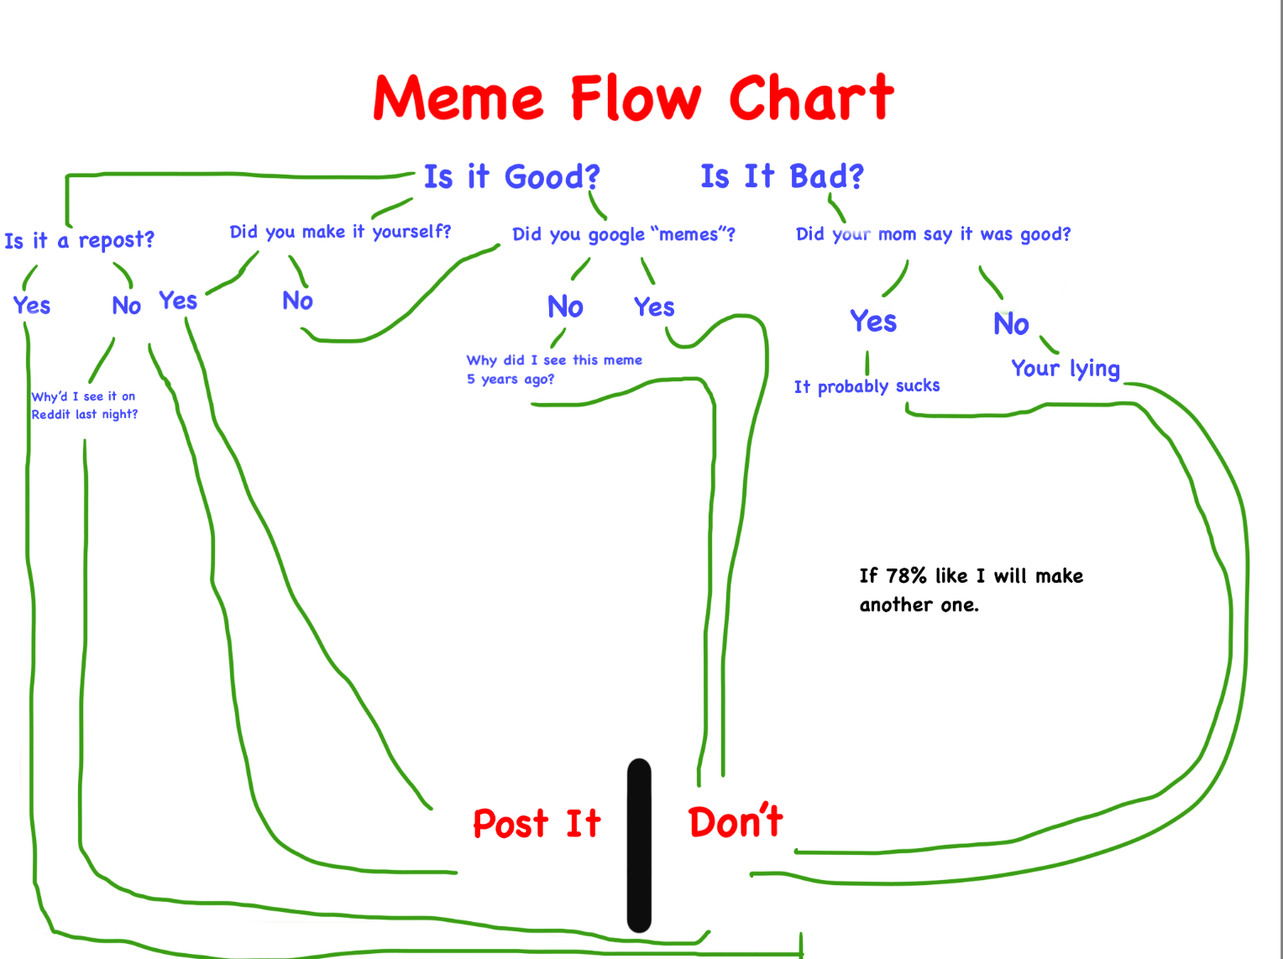 Meme Flow Chart ( don't be a normie)